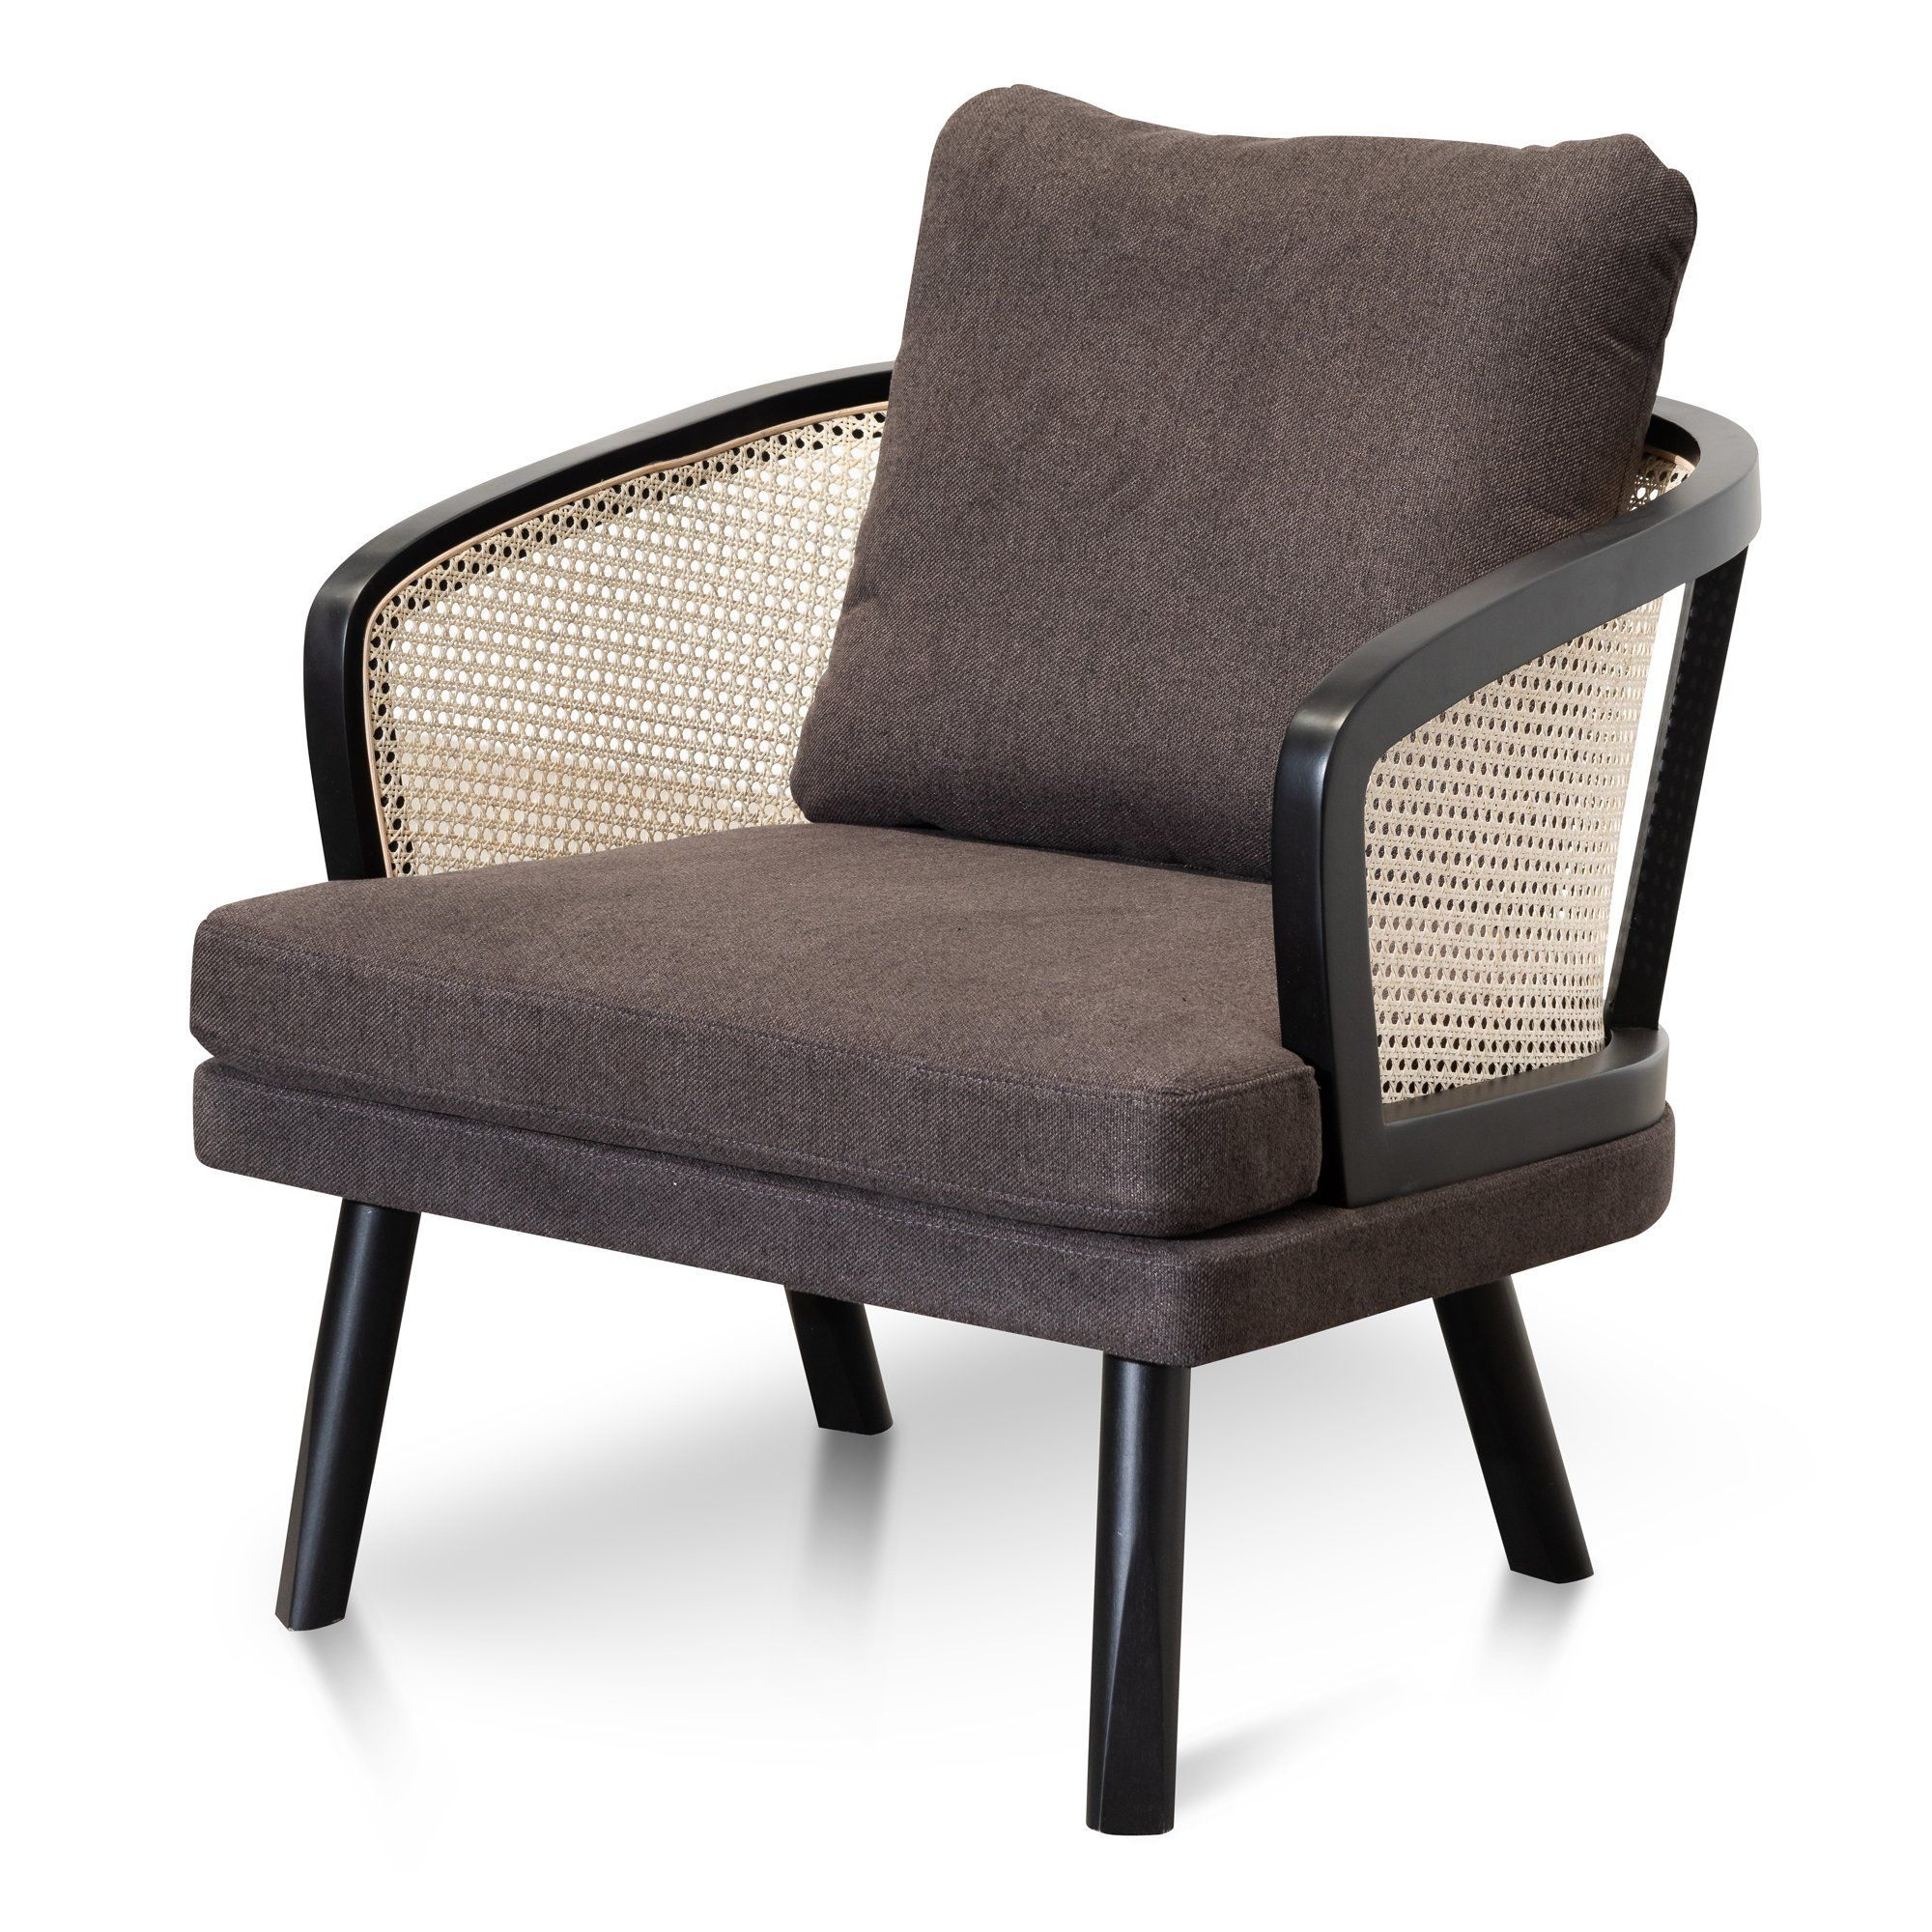 Arline Fabric Armchair Anchor Grey And Natural Rattan In 2020